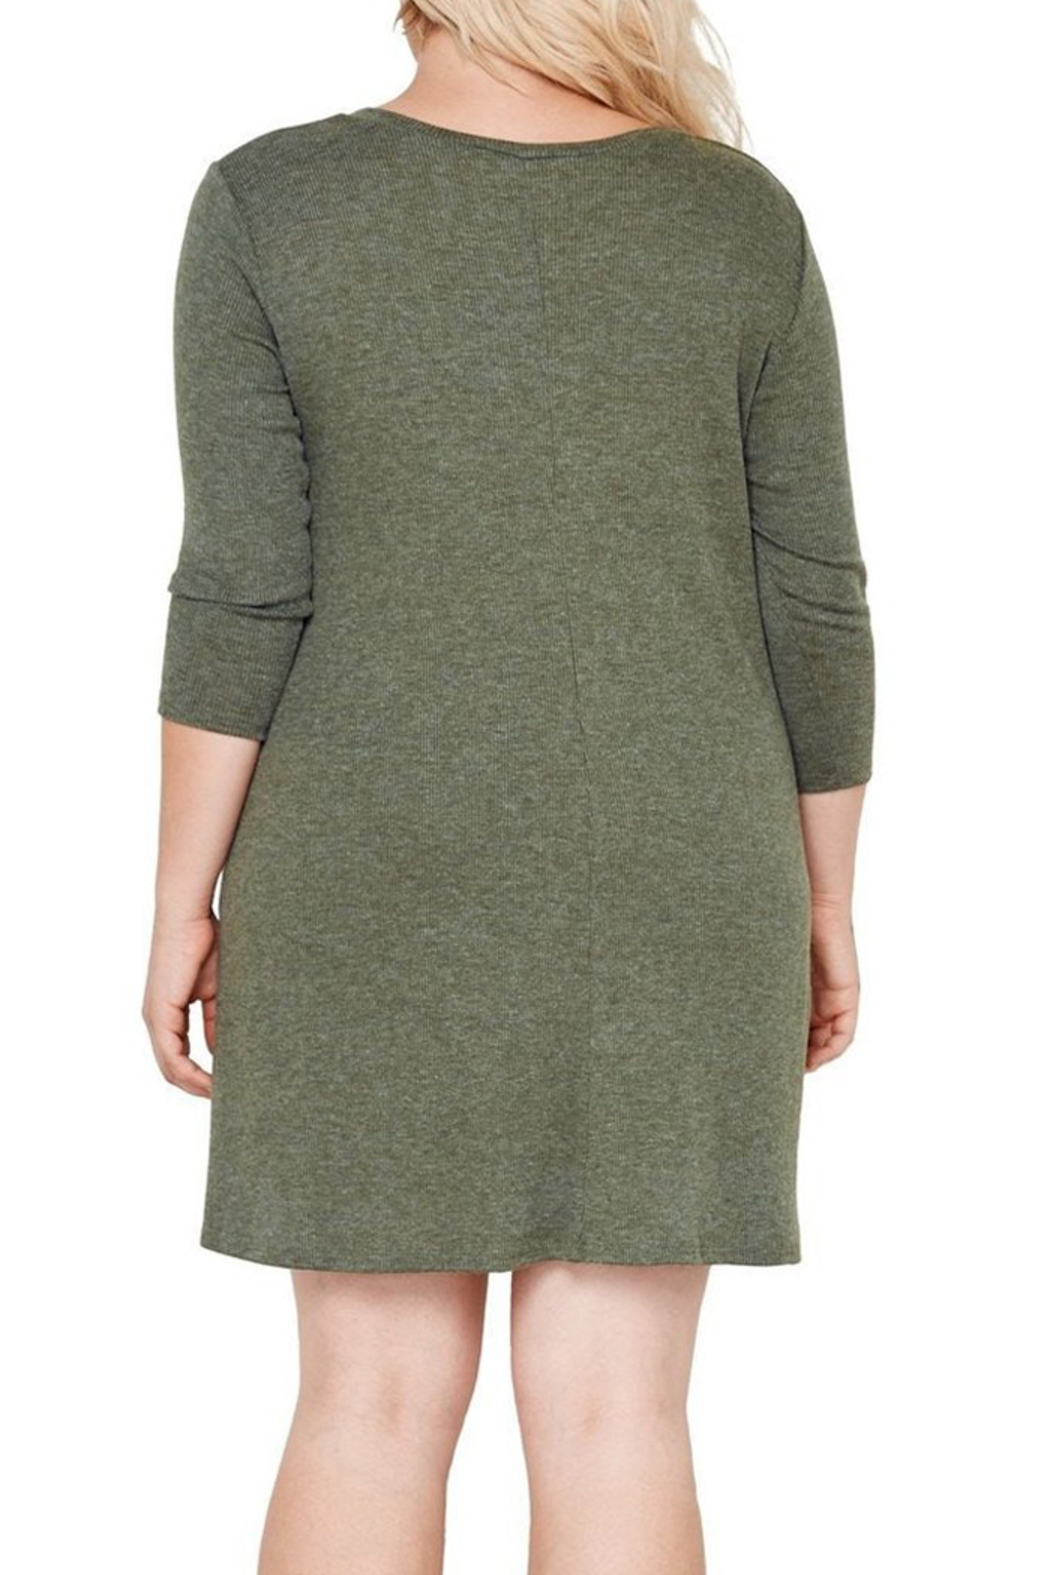 MaiTai Olive Ribbed Dress - Front Full Image